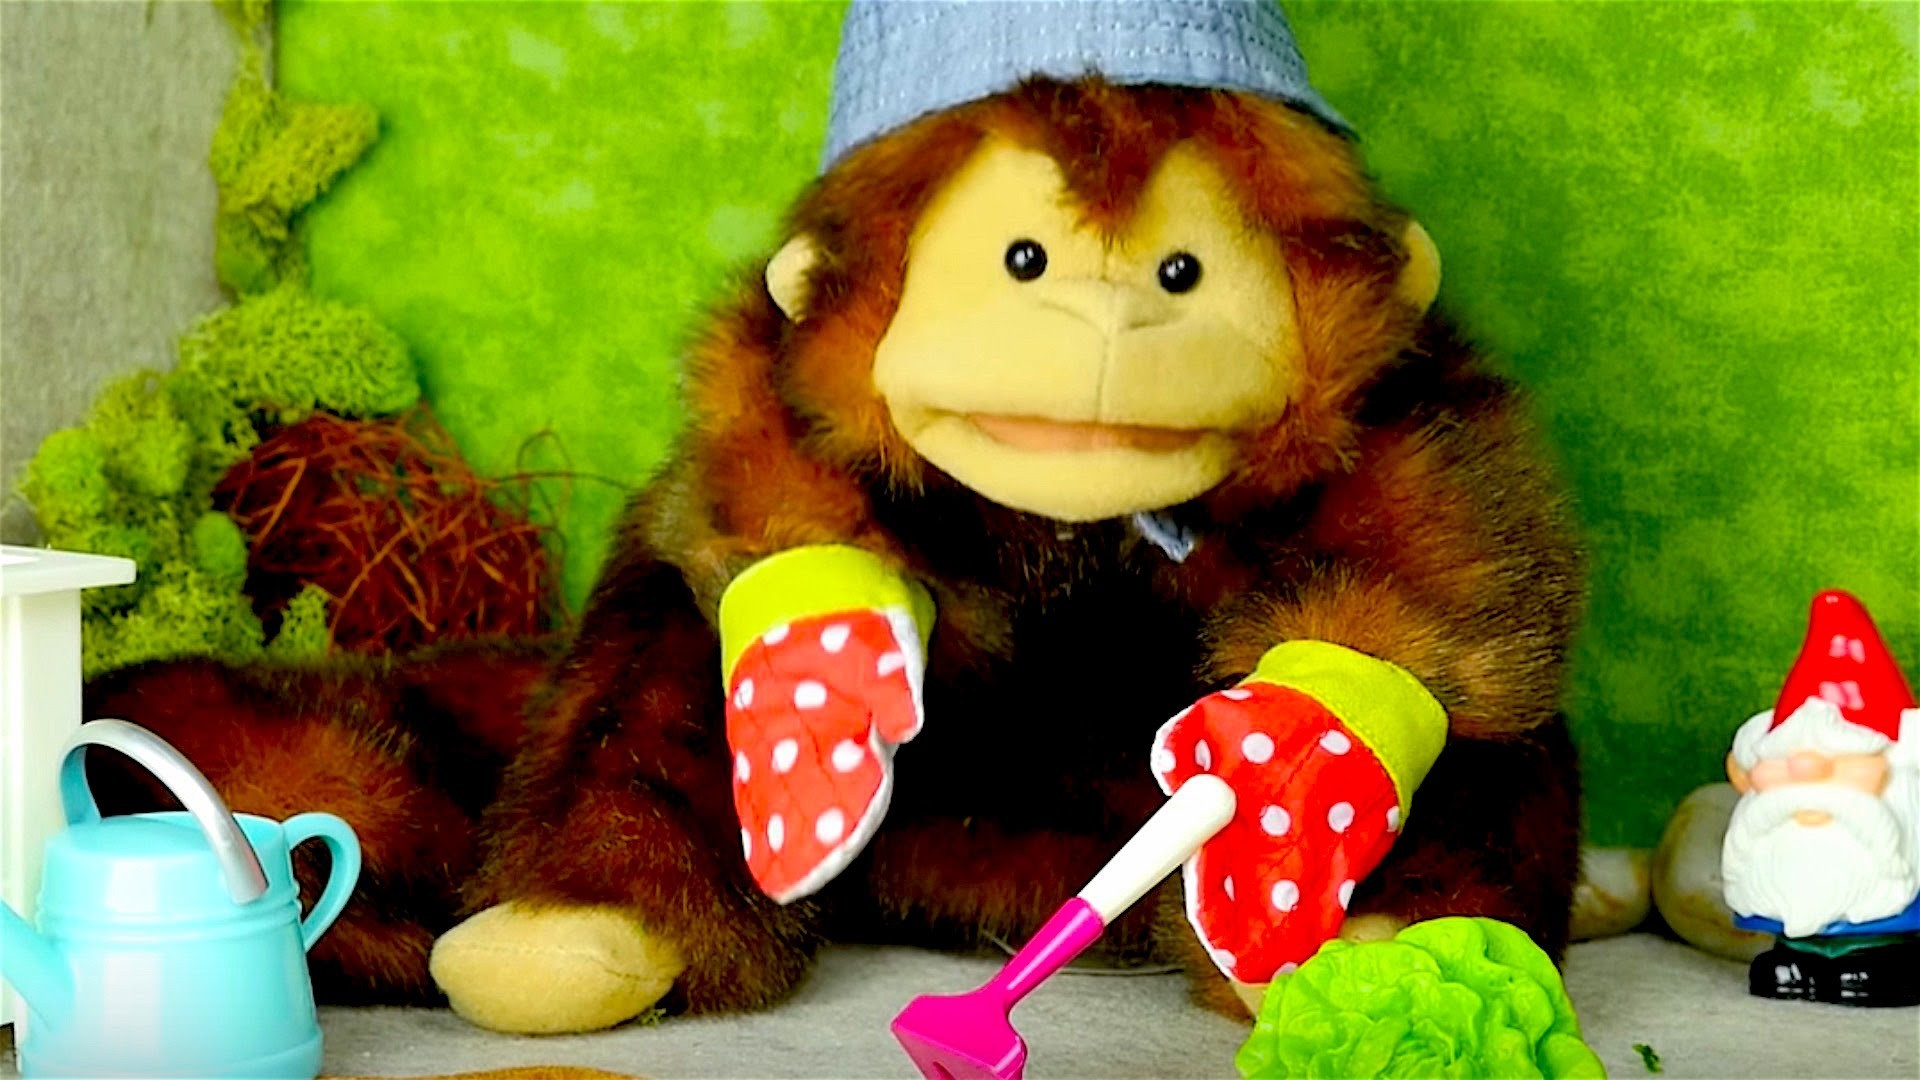 Videos for kids - Toy Gardening Tools - Names of vegetables - Mary the Monkey